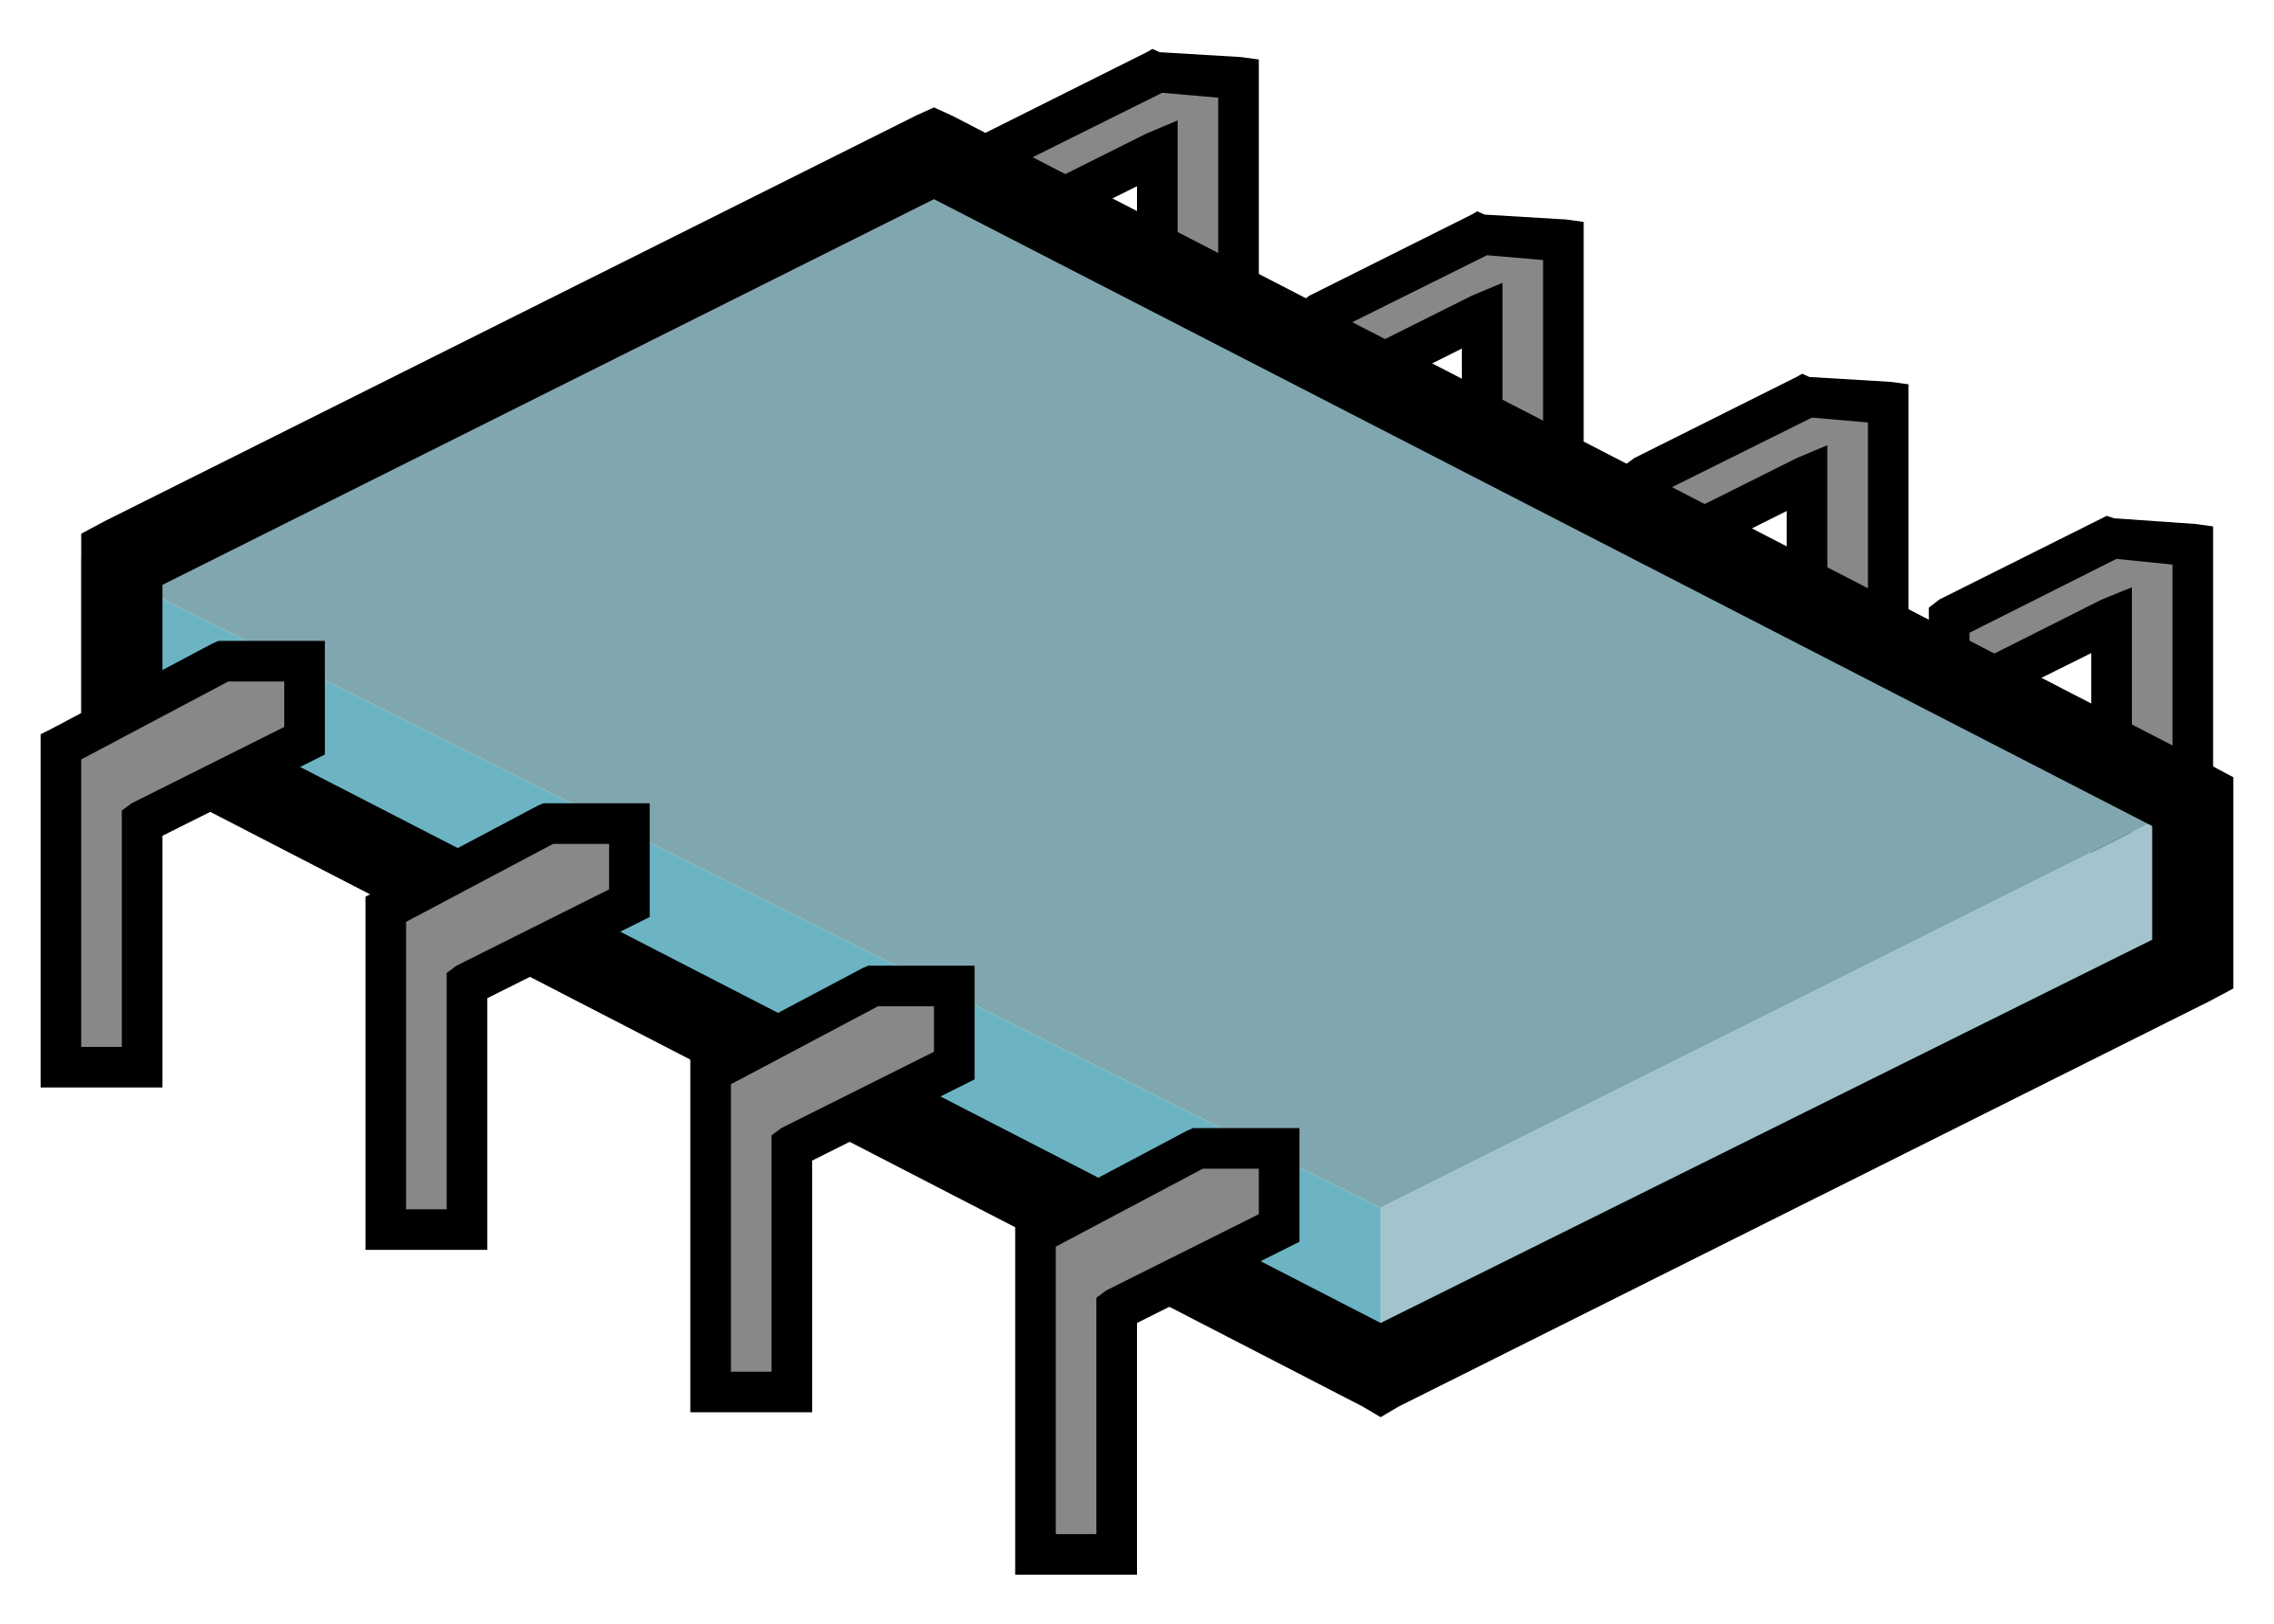 Big image png. Chip clipart computer chip